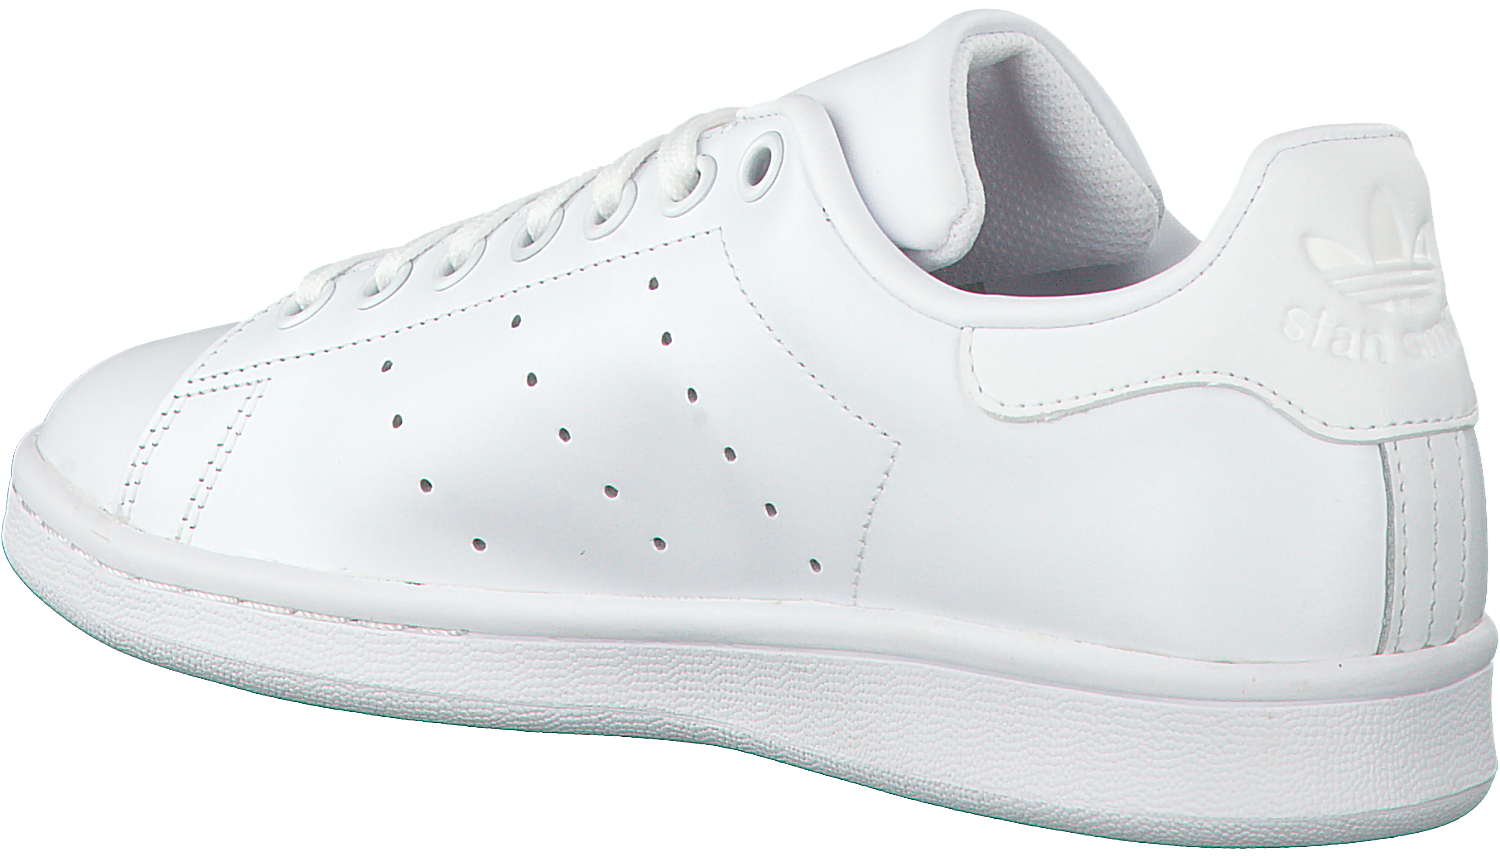 timeless design 15441 1230e Witte ADIDAS Sneakers STAN SMITH DAMES. ADIDAS. Previous